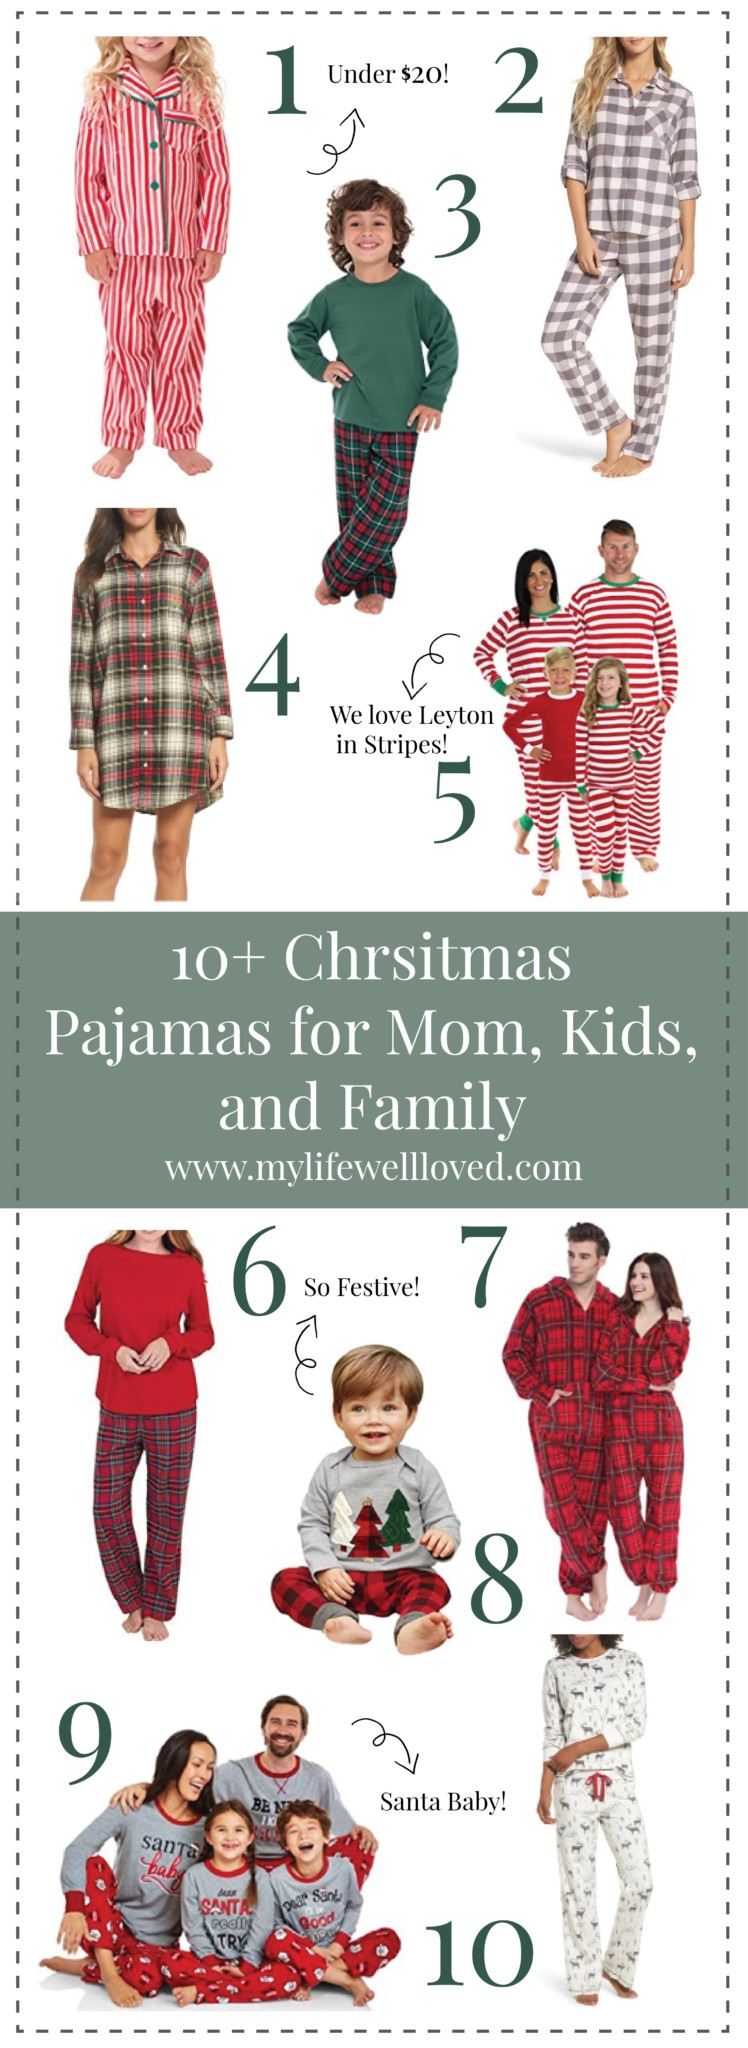 10+ Chrismtas Pajama Ideas for Mom, Dad, and kids by Alabama Blogger Heather Brown // sleepware for holidays //